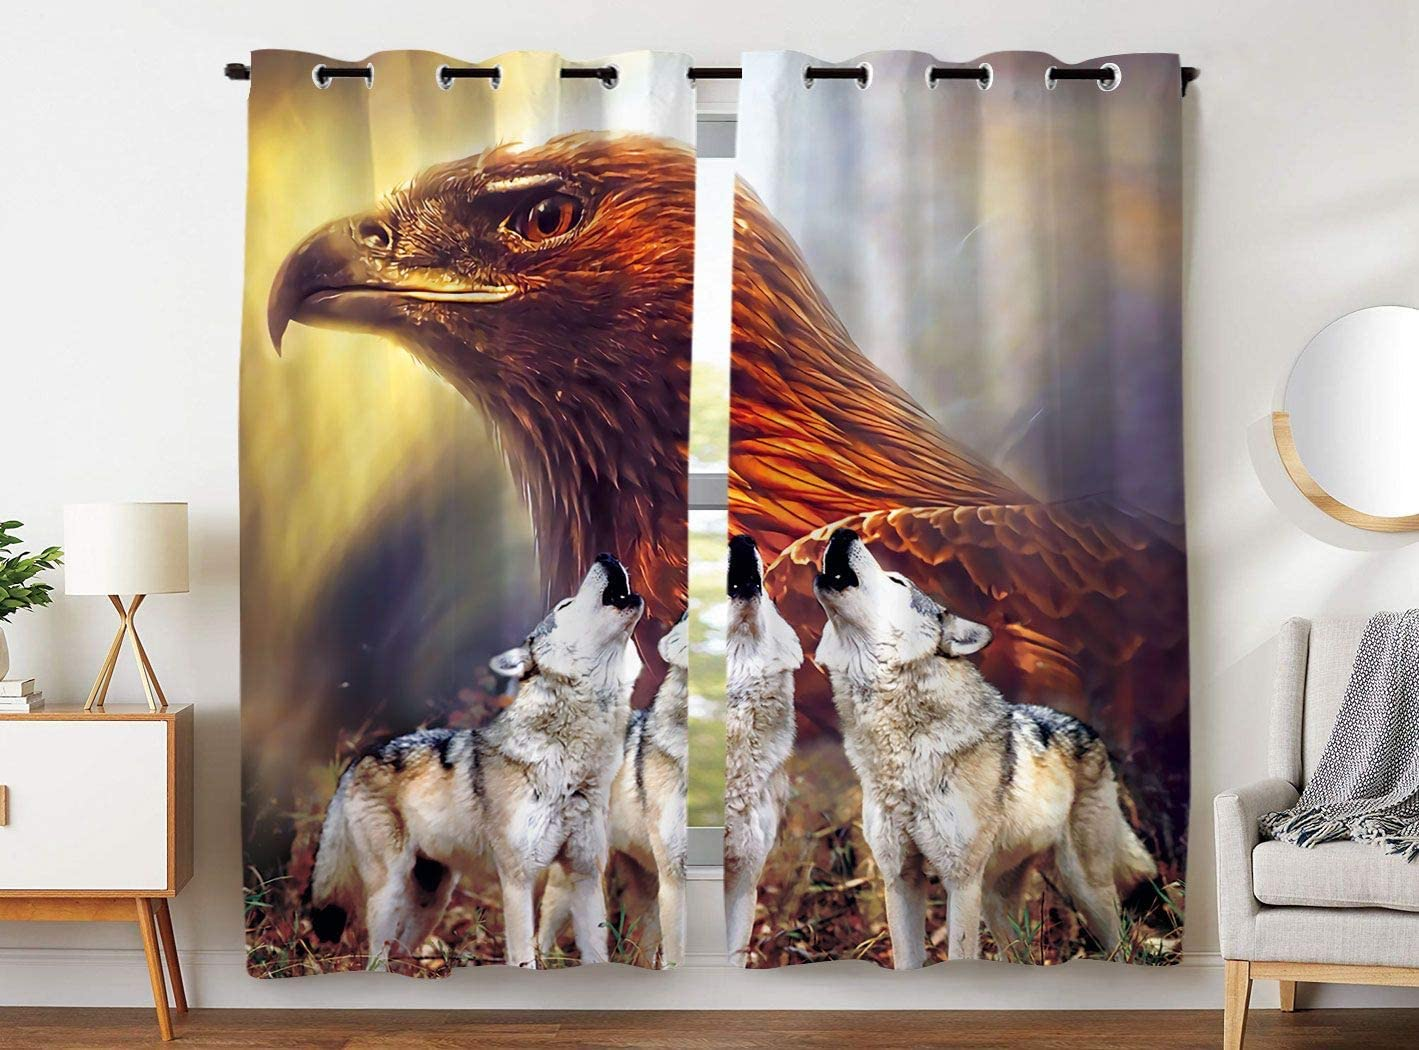 HommomH 54 x 84 Inch Wolf and Eagle Curtains (2 Panel) Grommet Top Blackout Shade Bedroom Machine Washable Eagle Head and Howling Wolf